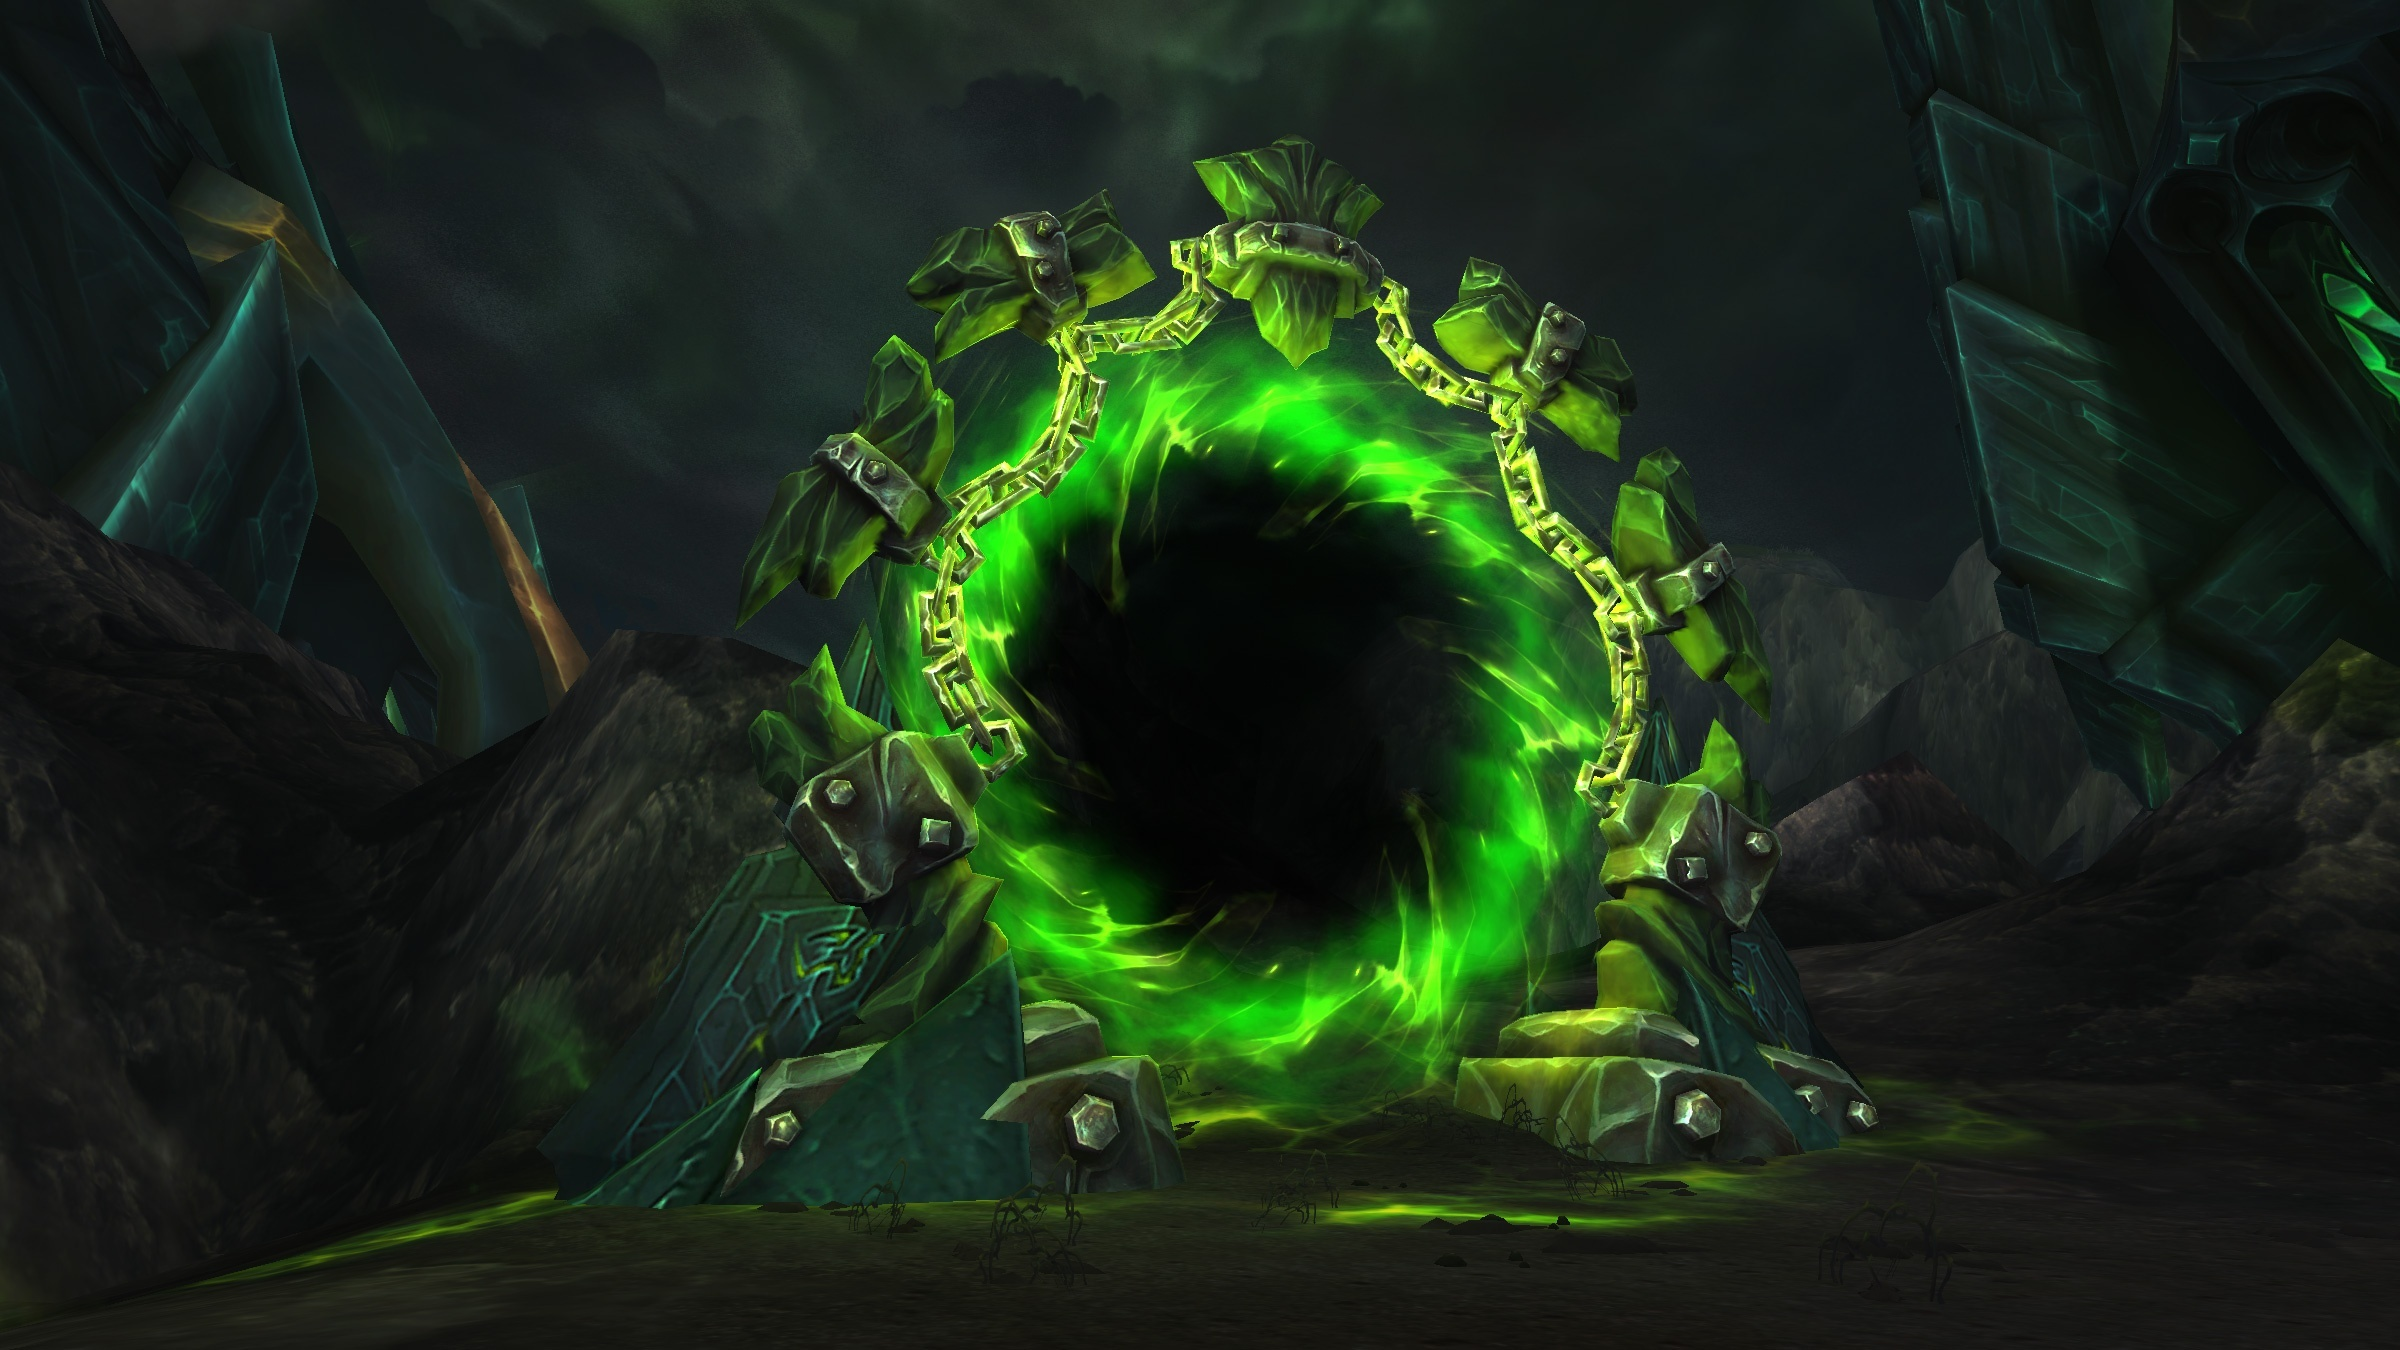 Guides for New WoW Players - What To Do First 10 Minutes In